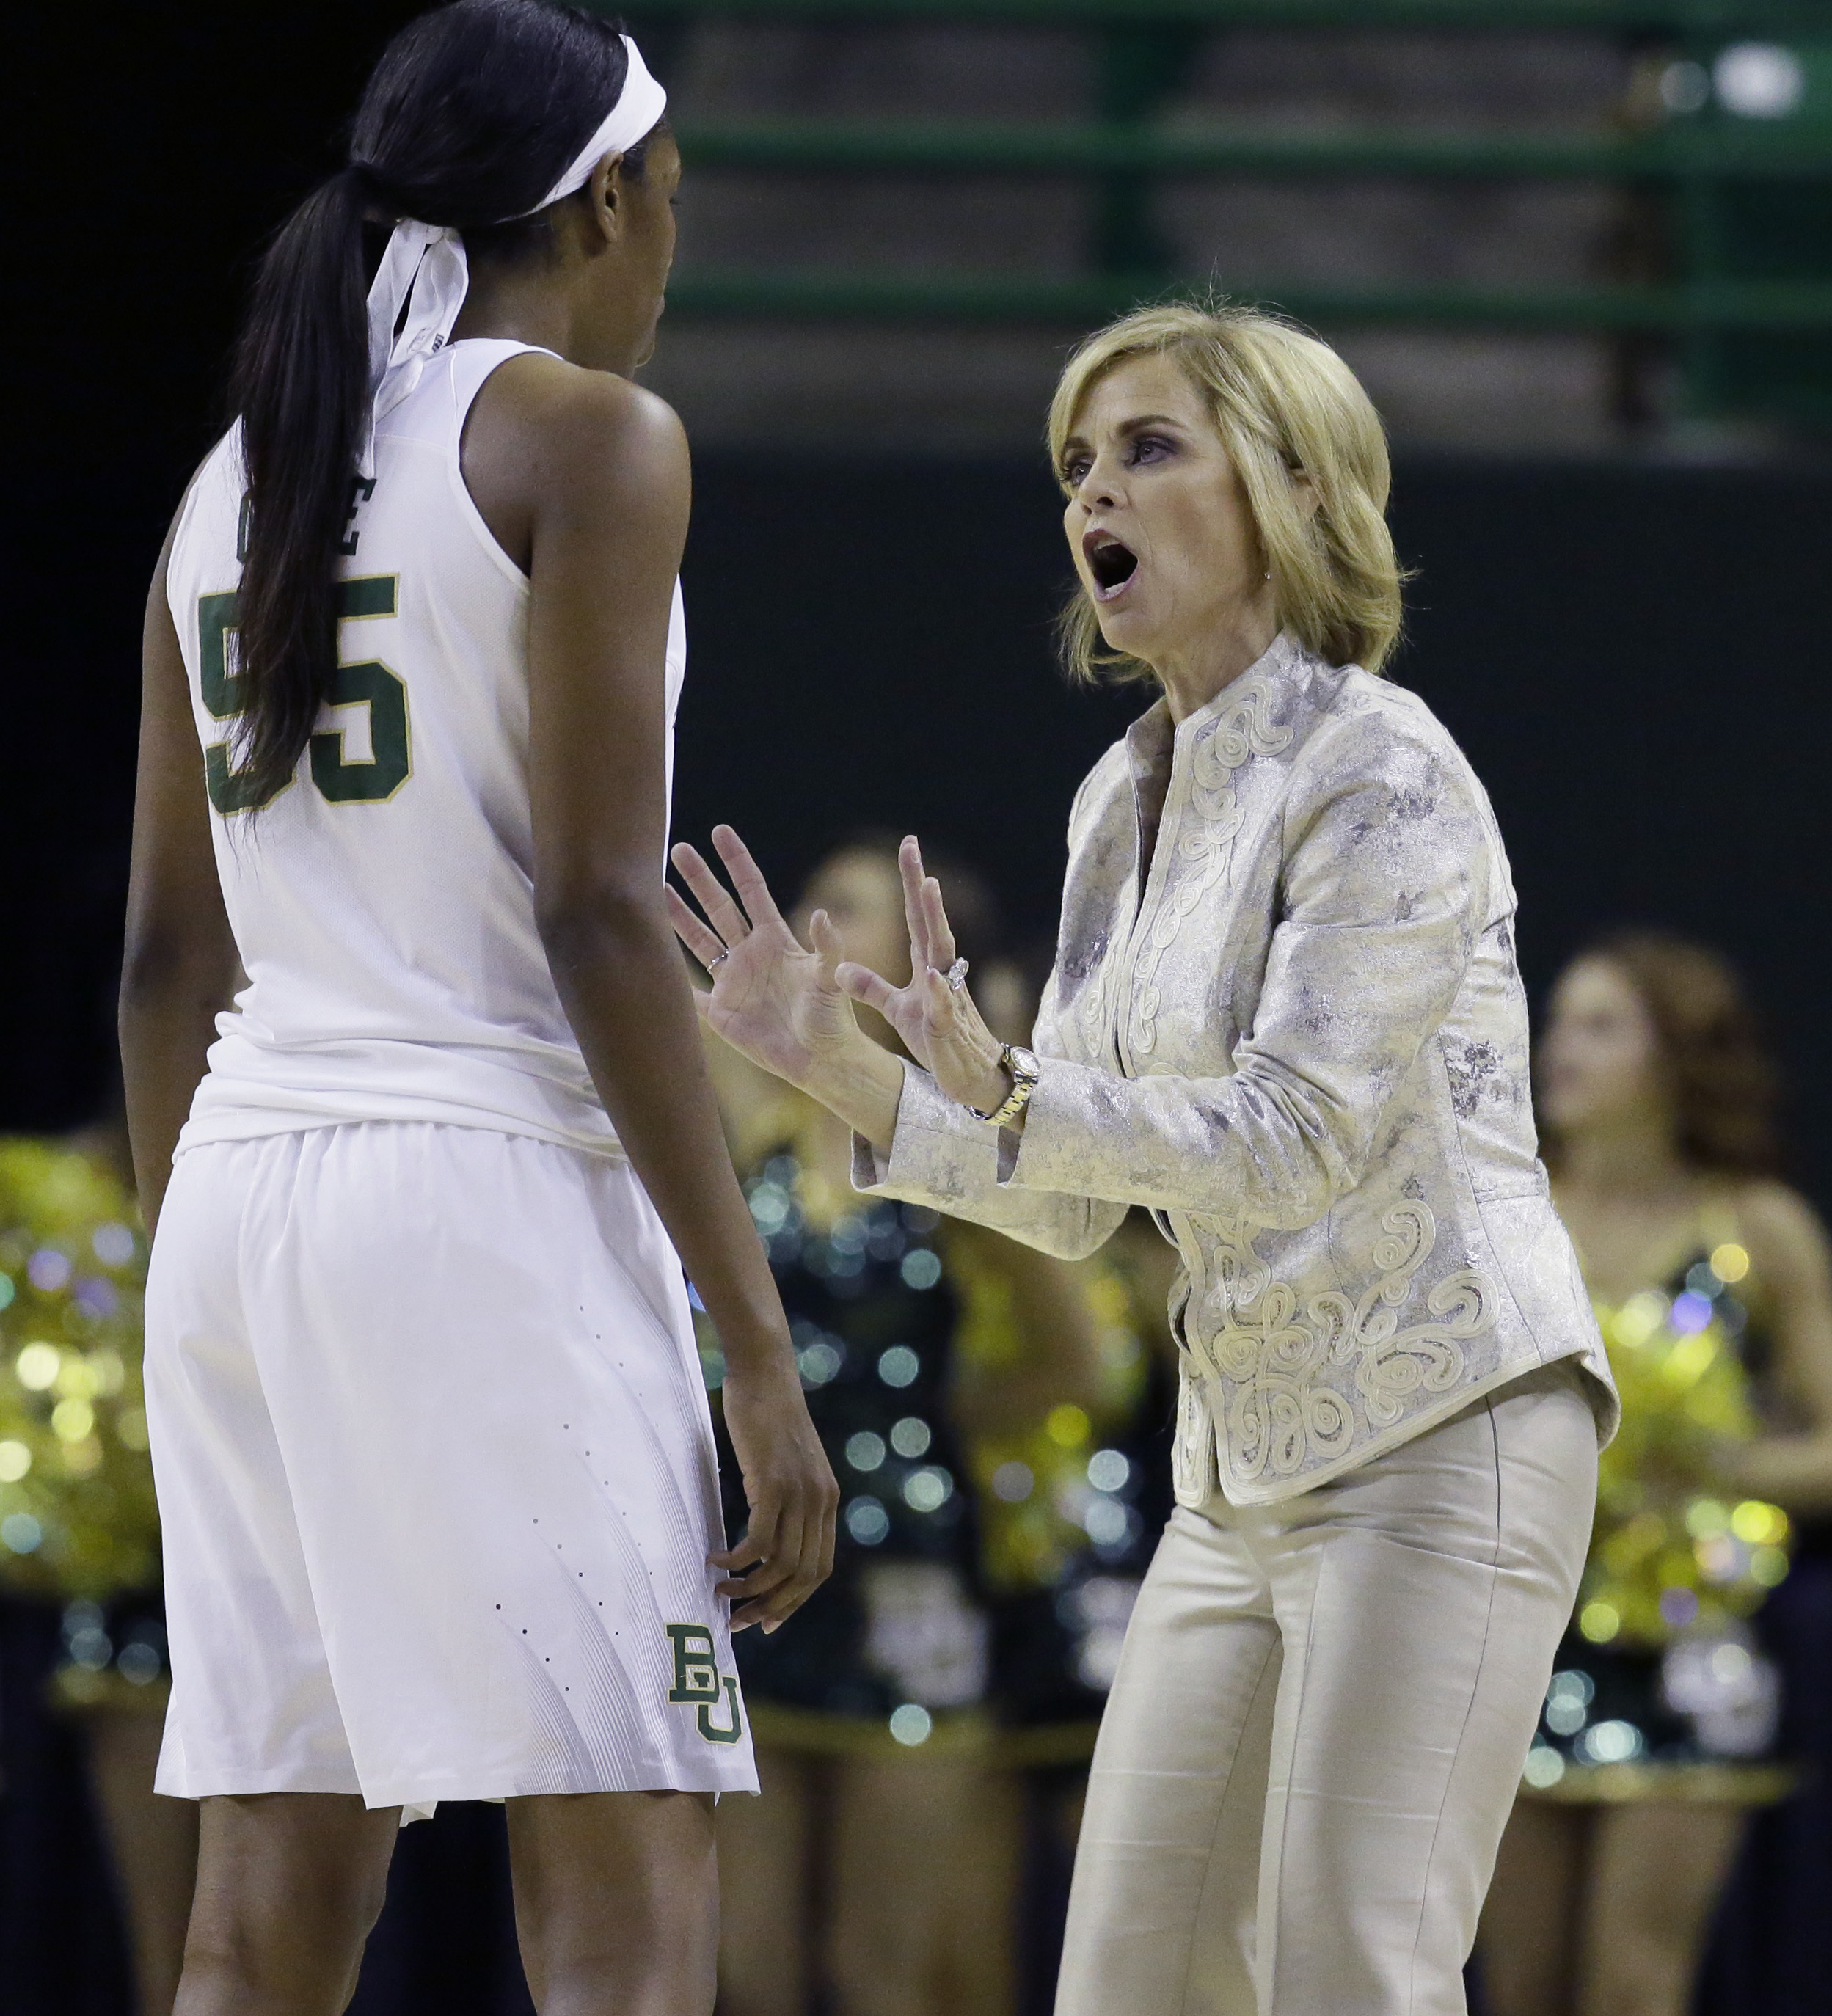 Baylor head coach Kim Mulkey, right, gives directions to center Khadijiah Cave (55) during the first half of a  first-round women's college basketball game against Idaho in the NCAA Tournament Friday, March 18, 2016, in Waco, Texas. (AP Photo/LM Otero)